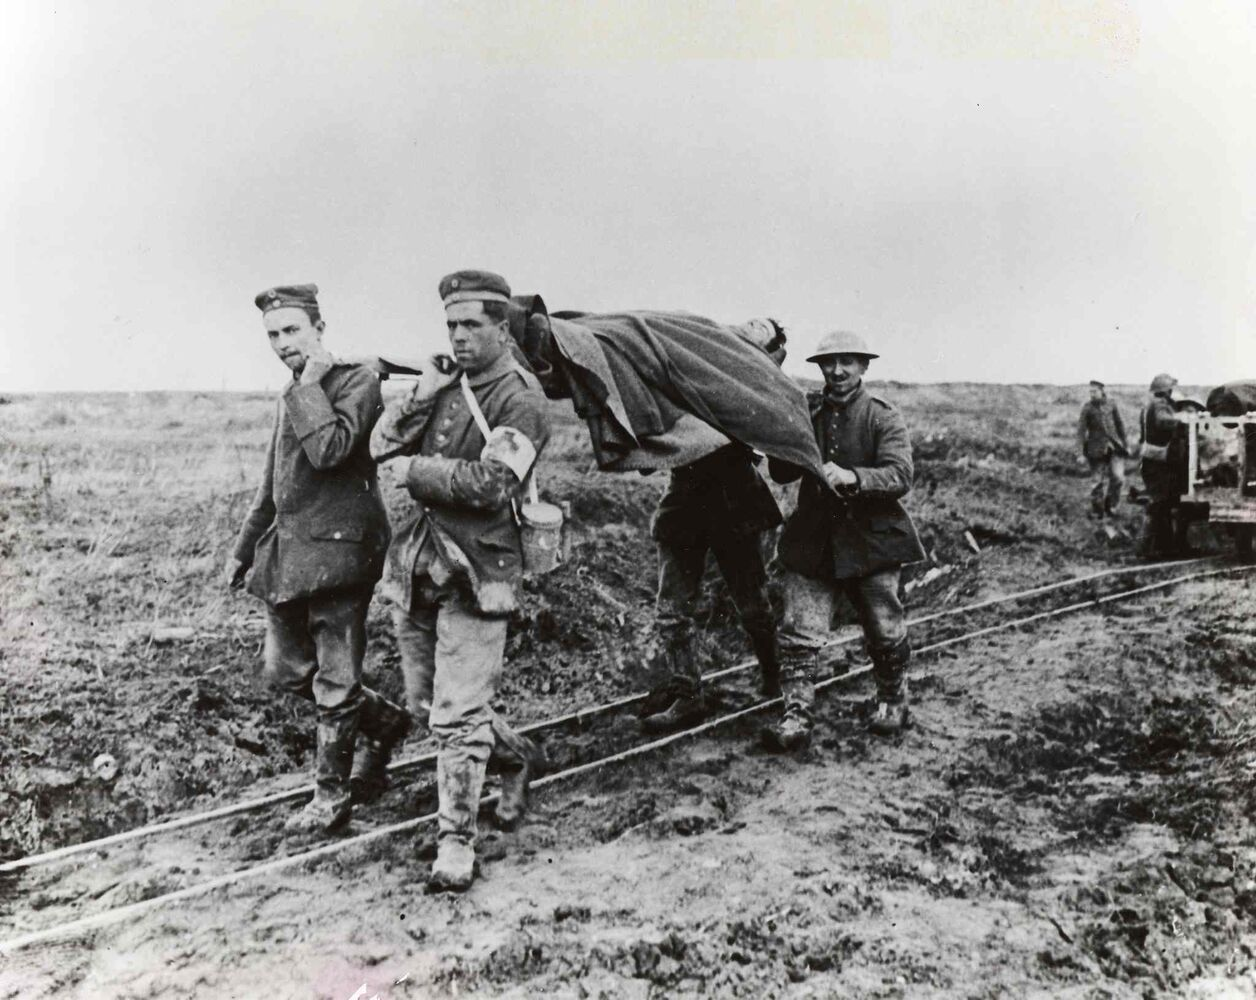 Bringing in the wounded Canadian soldiers from the battlefield, April 1917, at Vimy Ridge, France.   (Canada. Dept. Of National Defence/National Archives of Canada/ PA-001125)